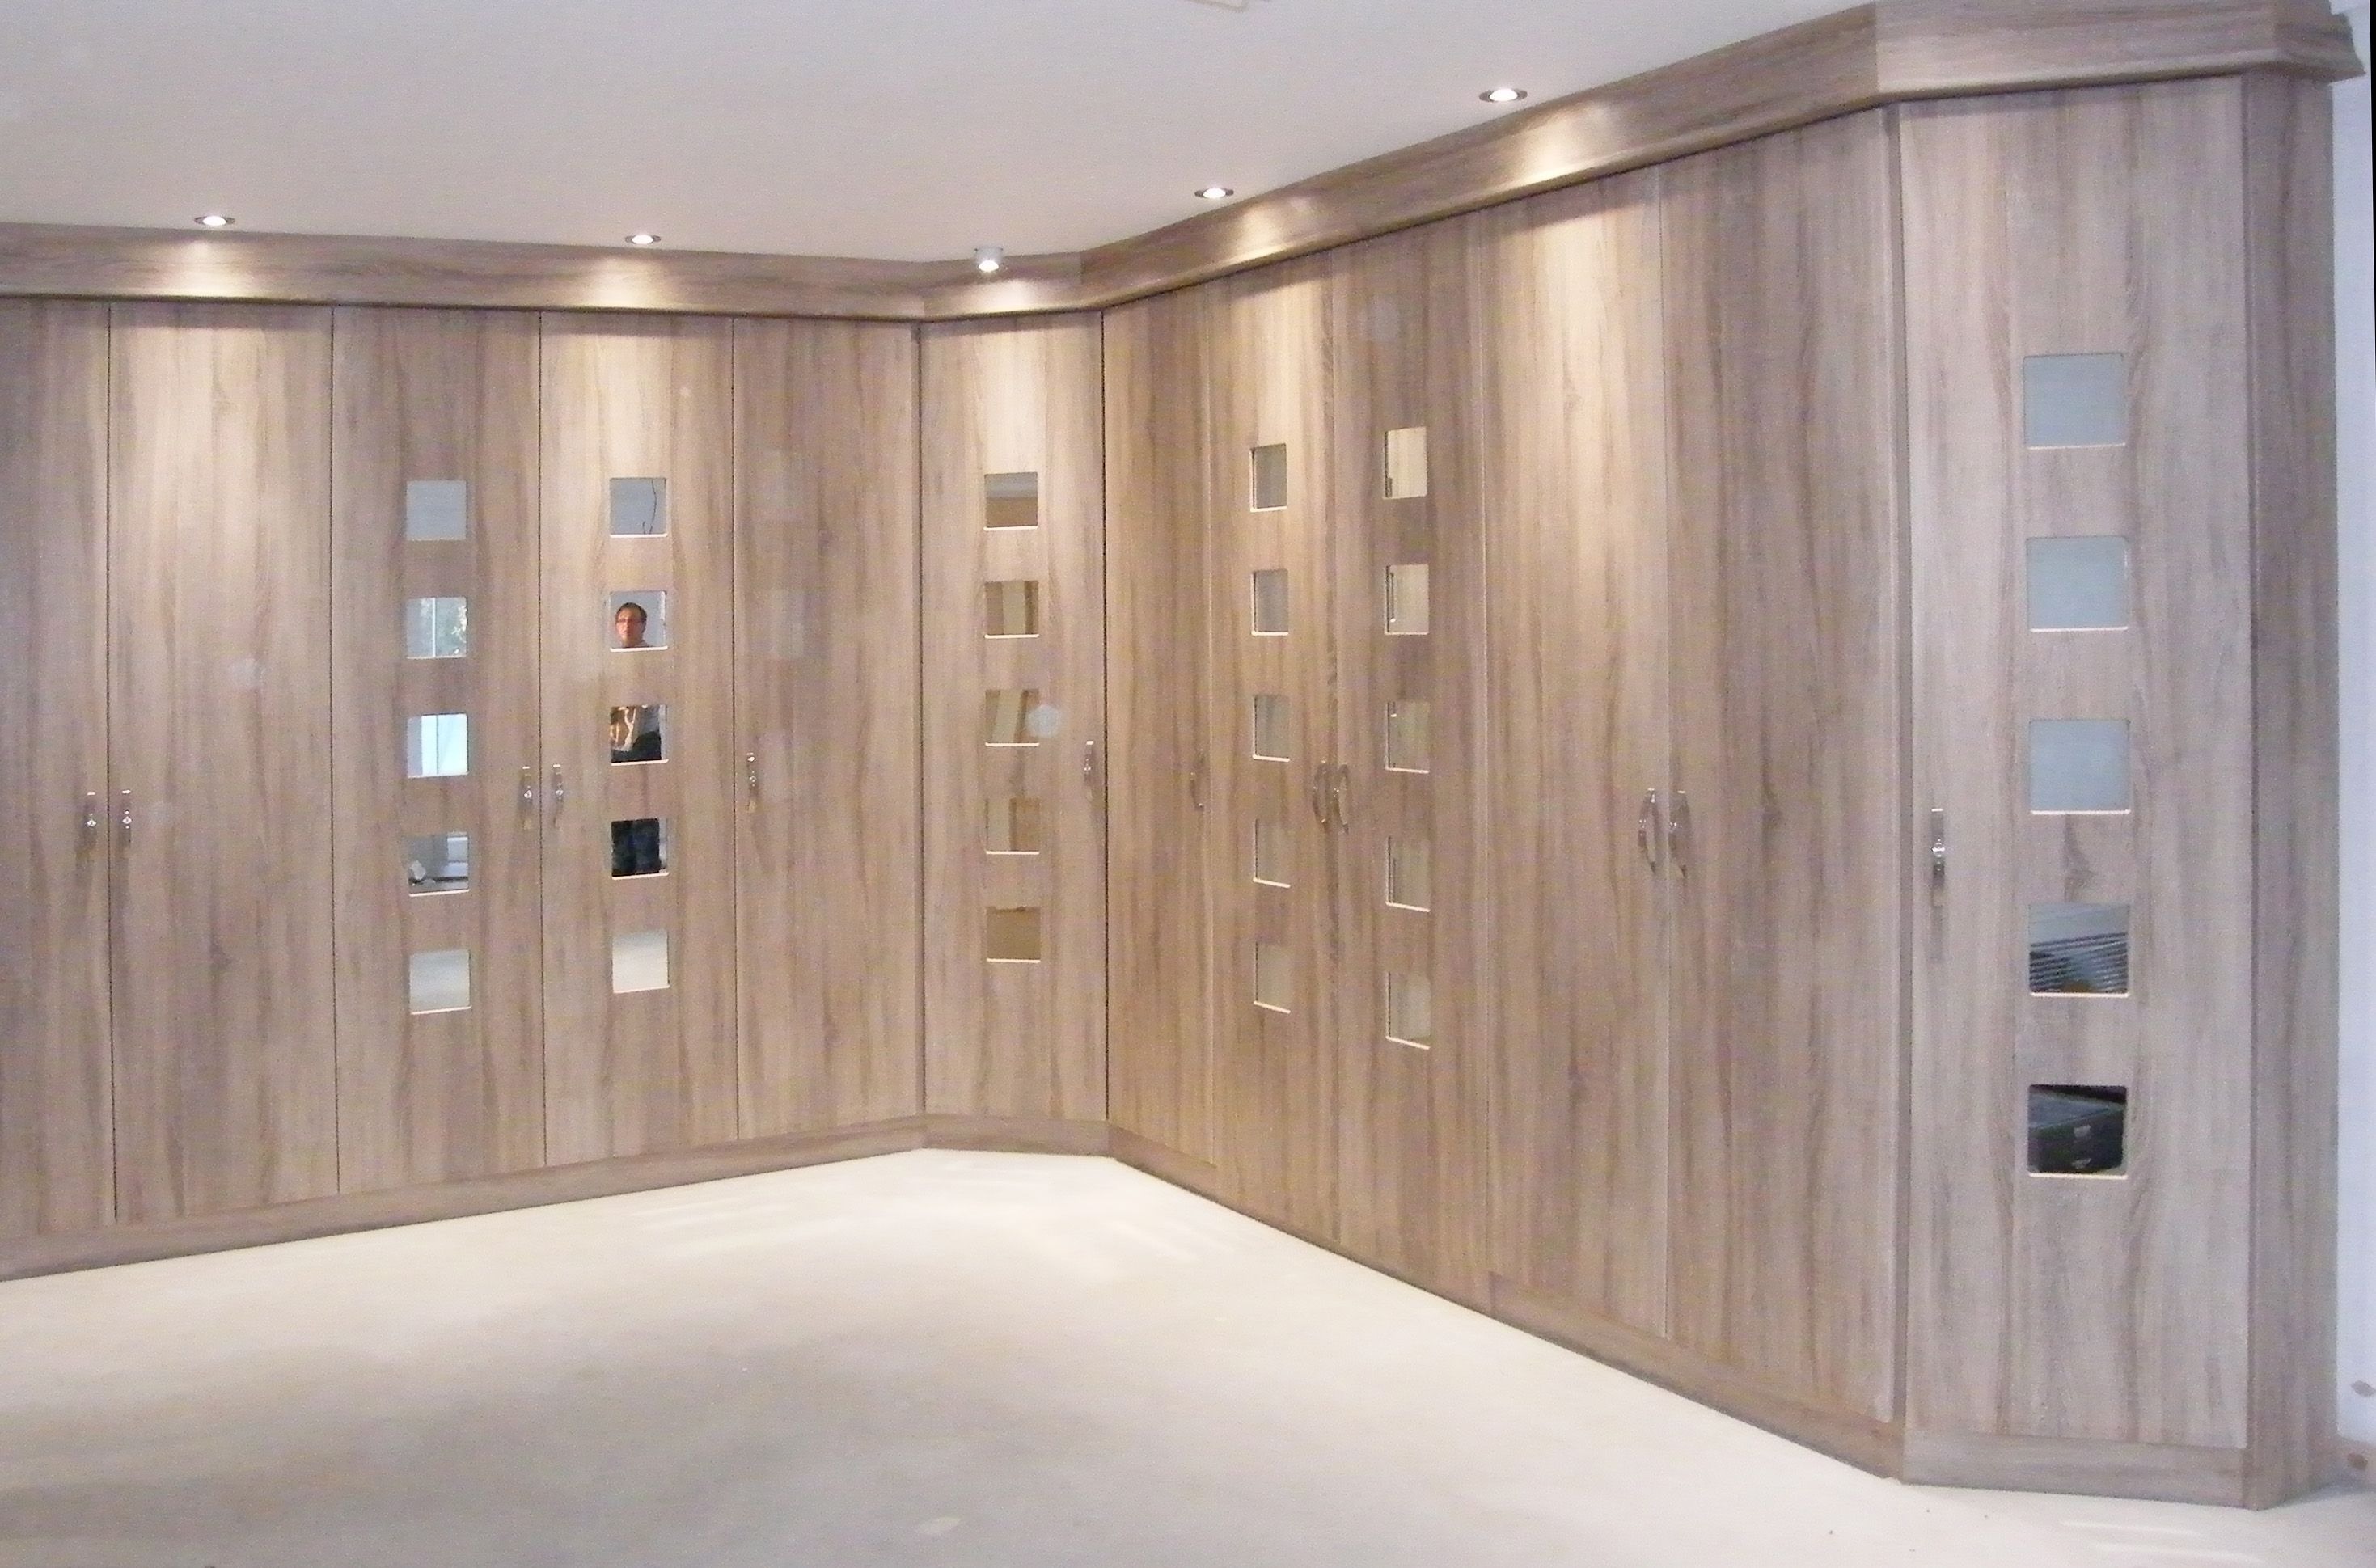 Bedroom Built In Wardrobe Designs Contemporary Fitted Wardrobe Design With Wooden Style Doors For